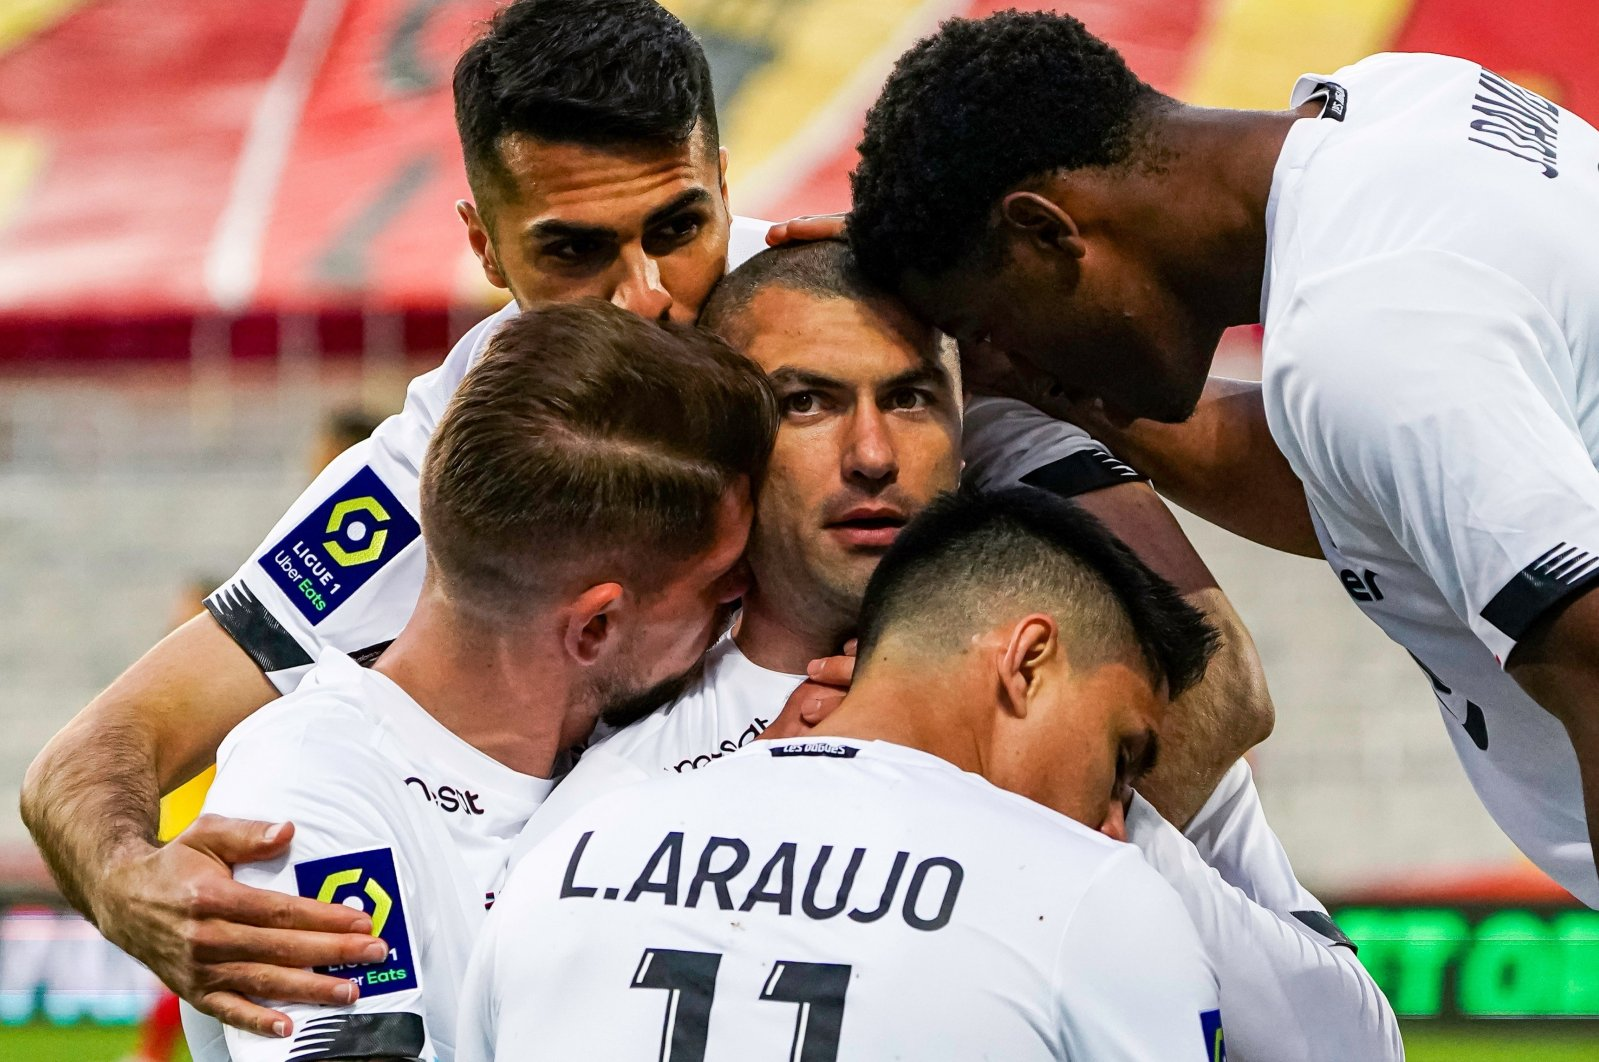 Lille's Burak Yılmaz (C) celebrates a goal with his teammates during a Ligue 1 match against Lens at the Stade Bollaert-Delelis in Lens, France, May 7, 2021. (IHA Photo)